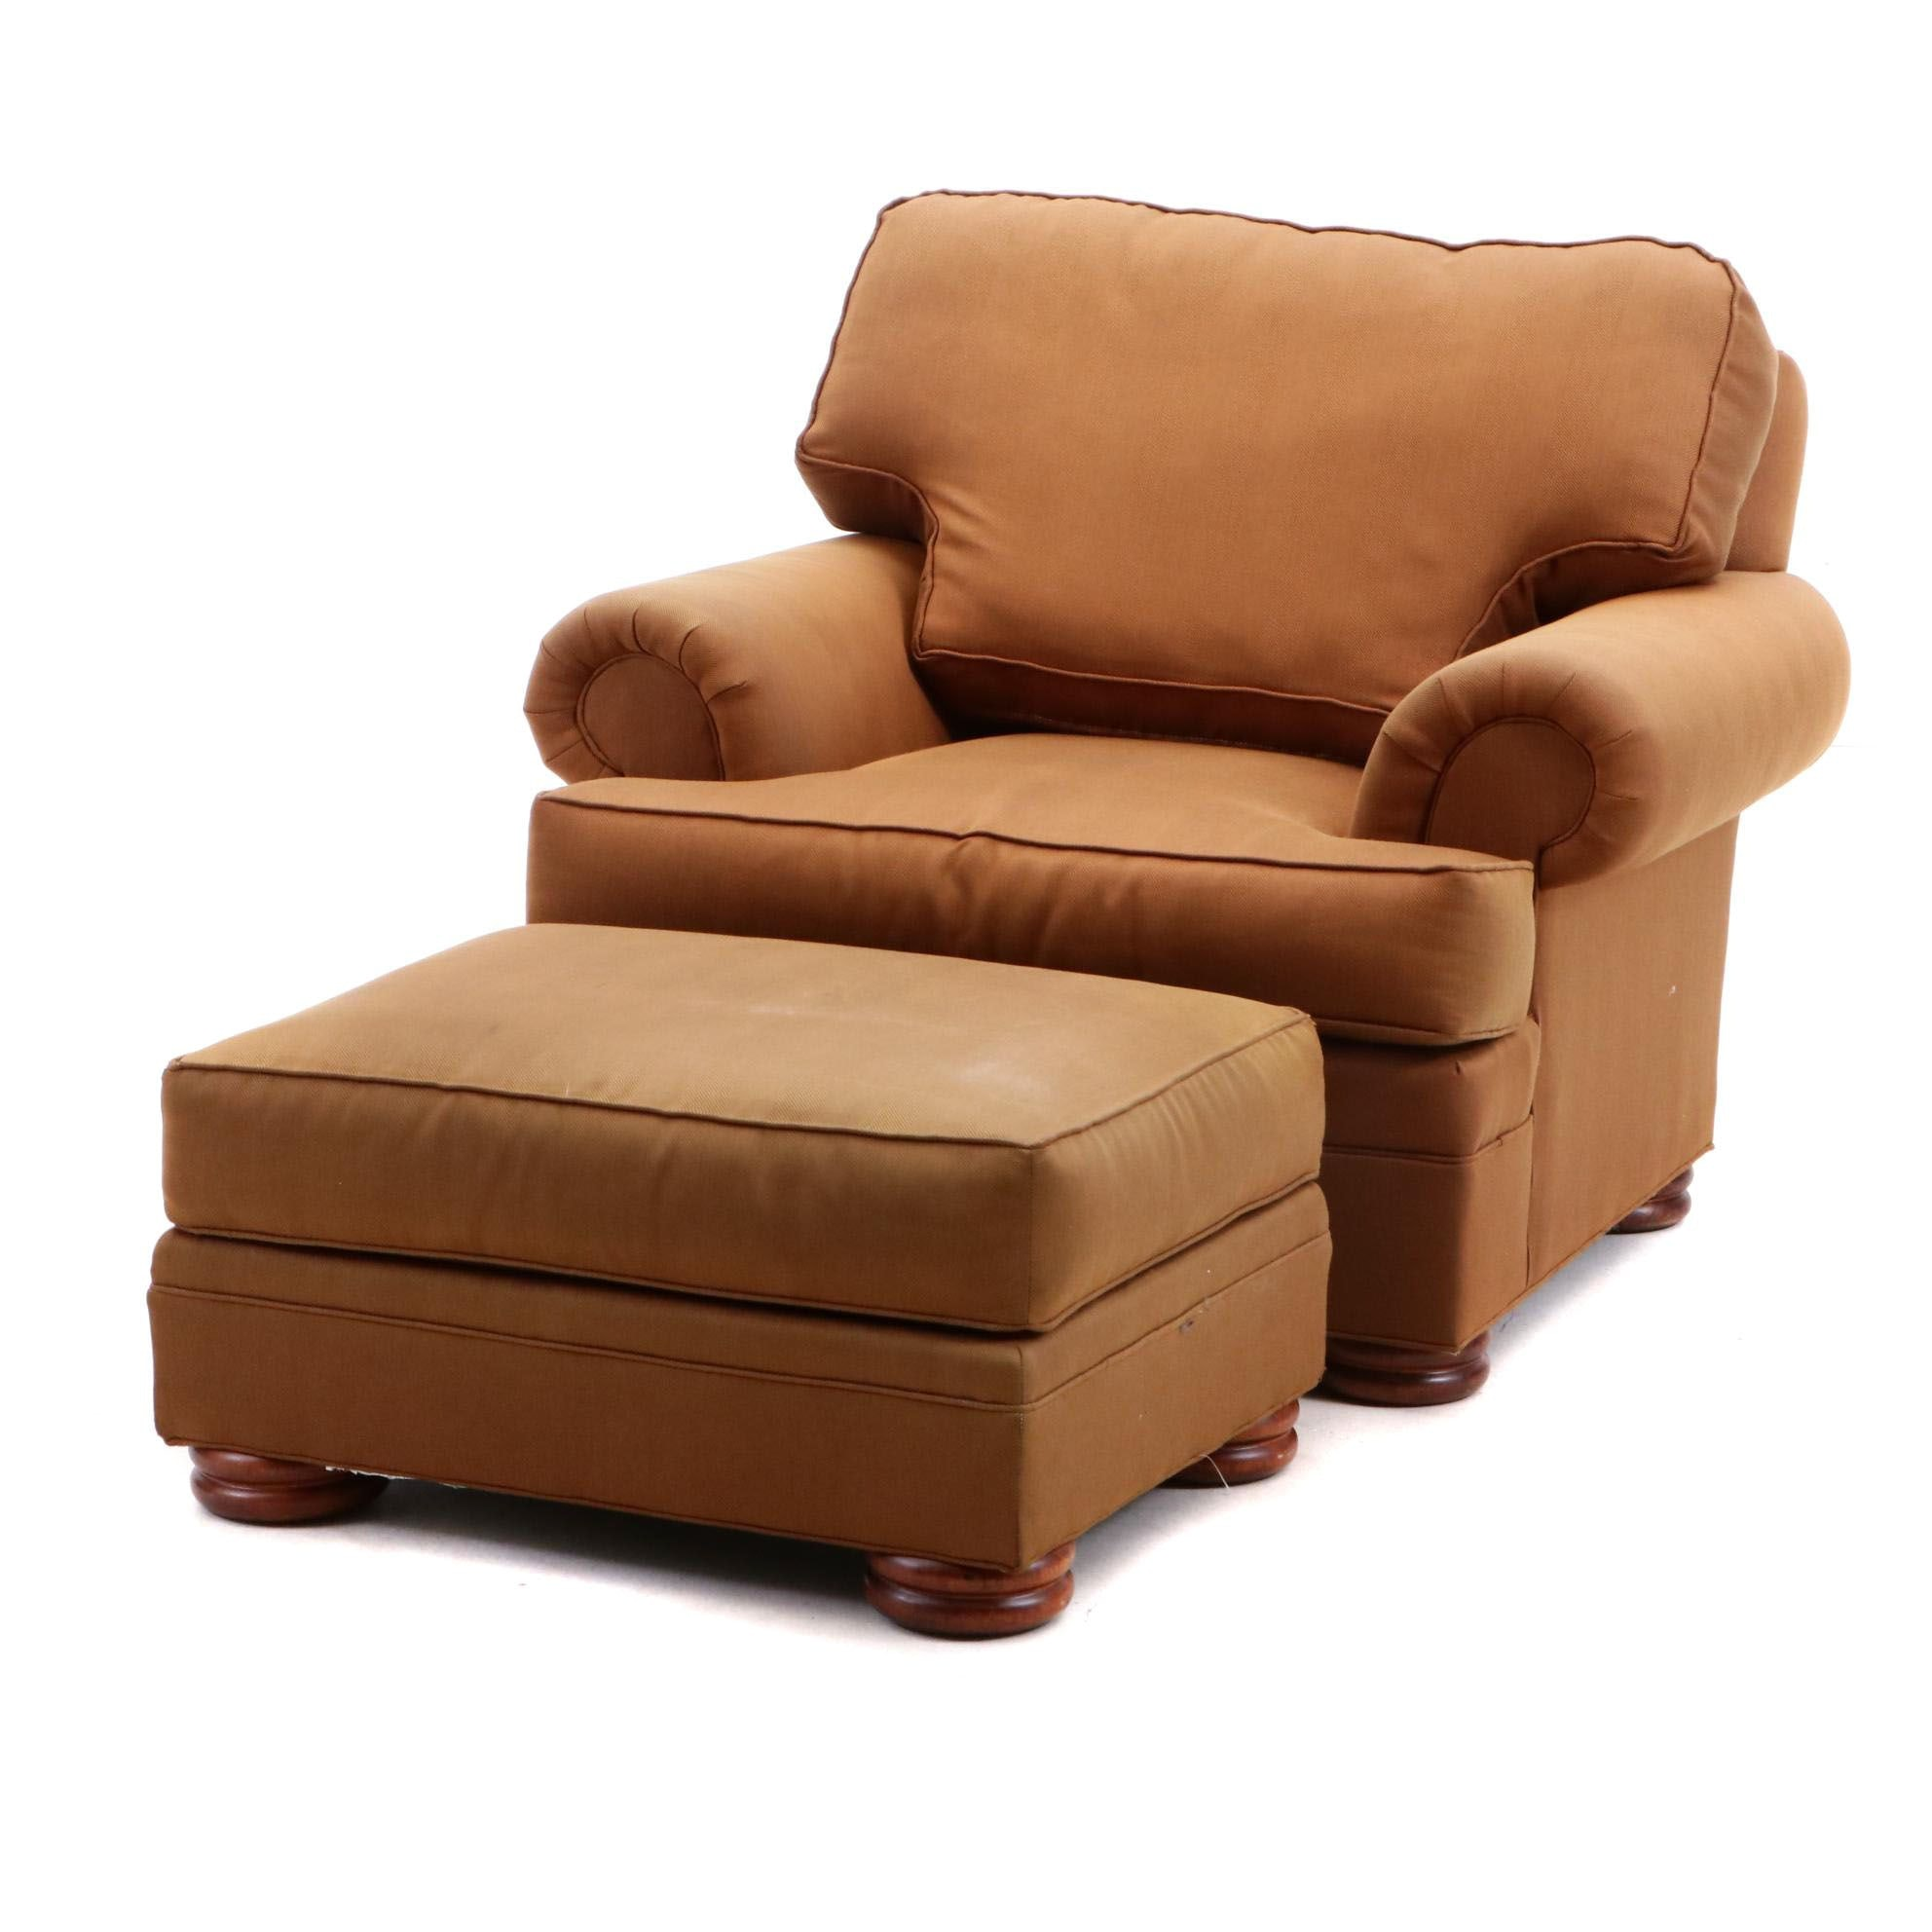 Contemporary Armchair and Ottoman from Thomasville Furniture